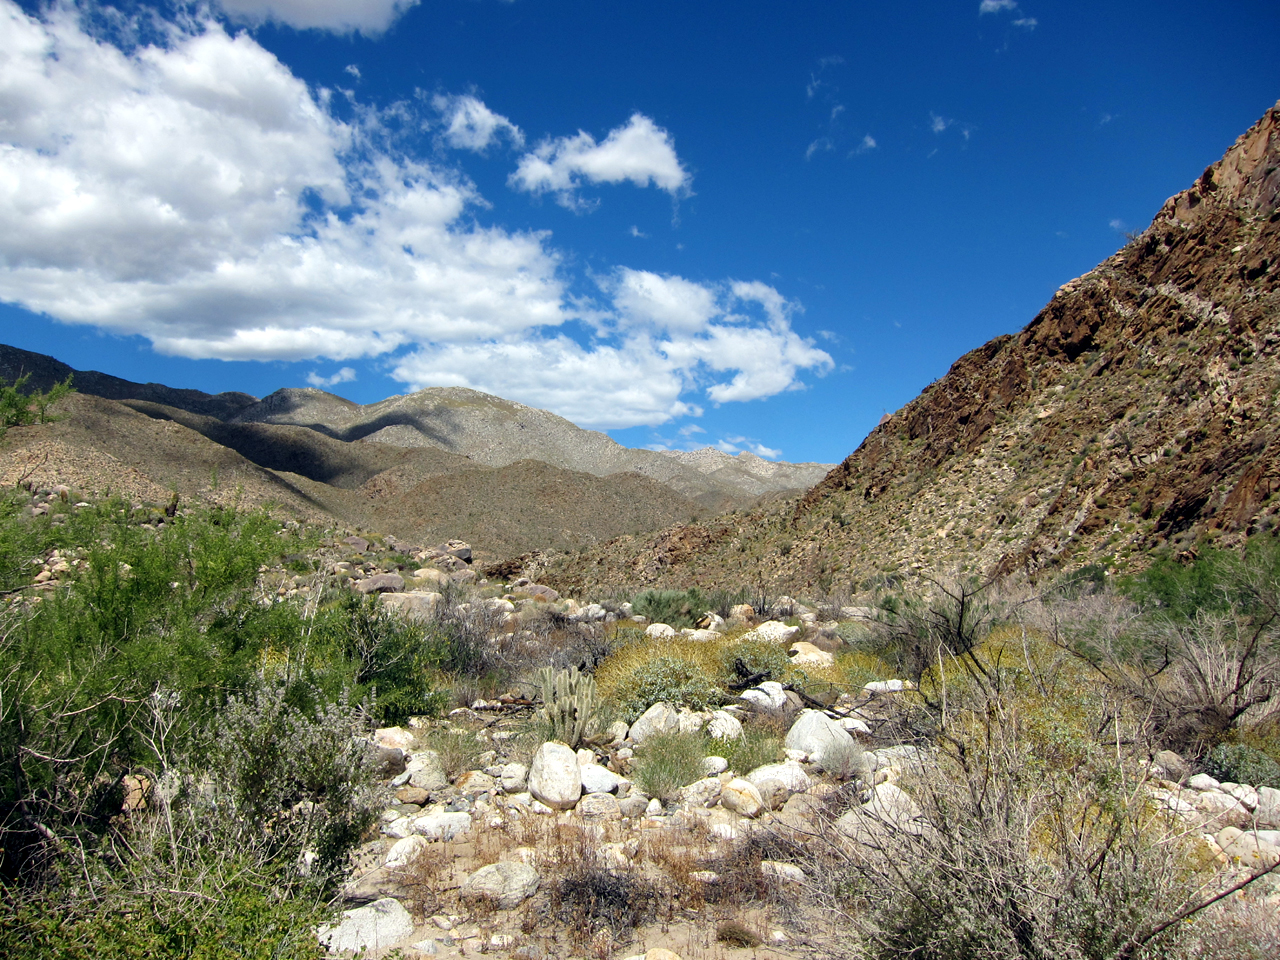 Brilliant blue desert skies framed most of our hike through Carrizo Gorge